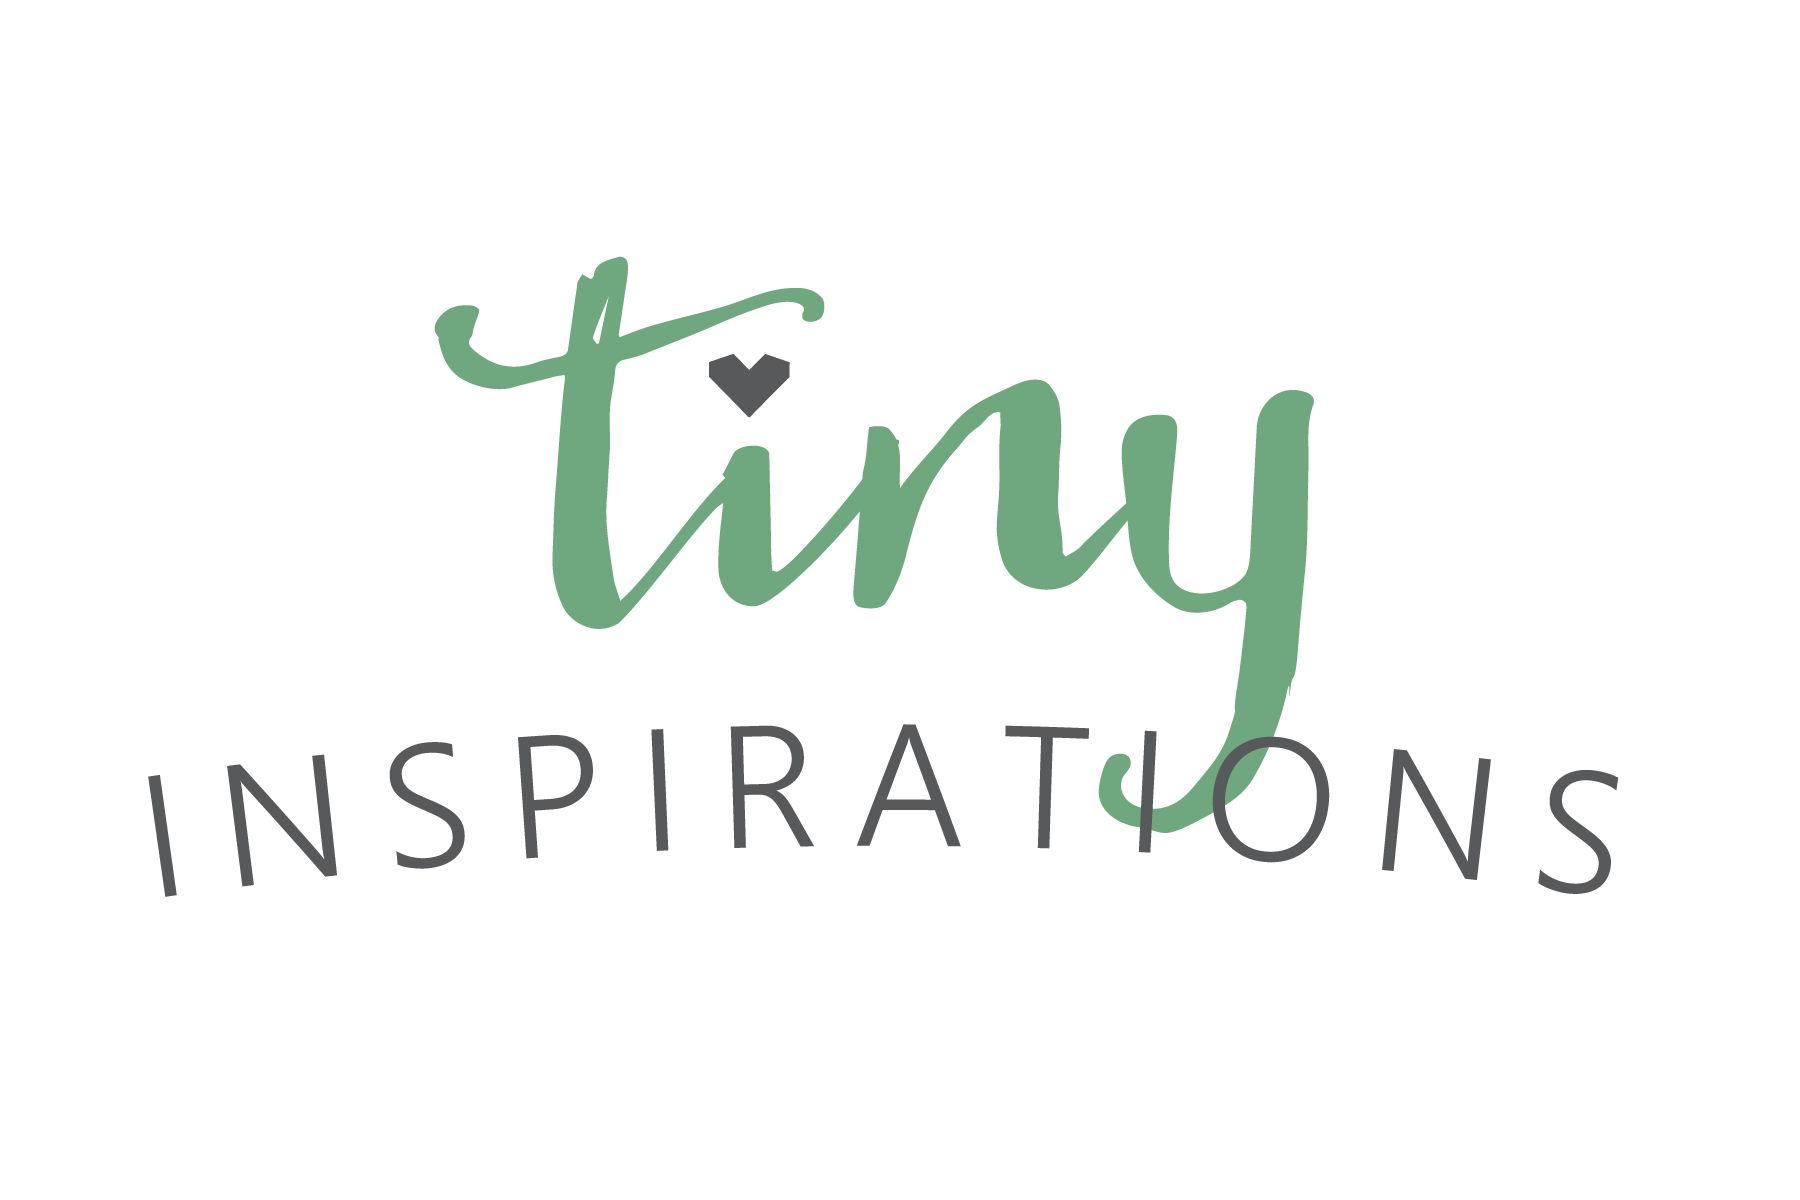 tiny inspirations logo